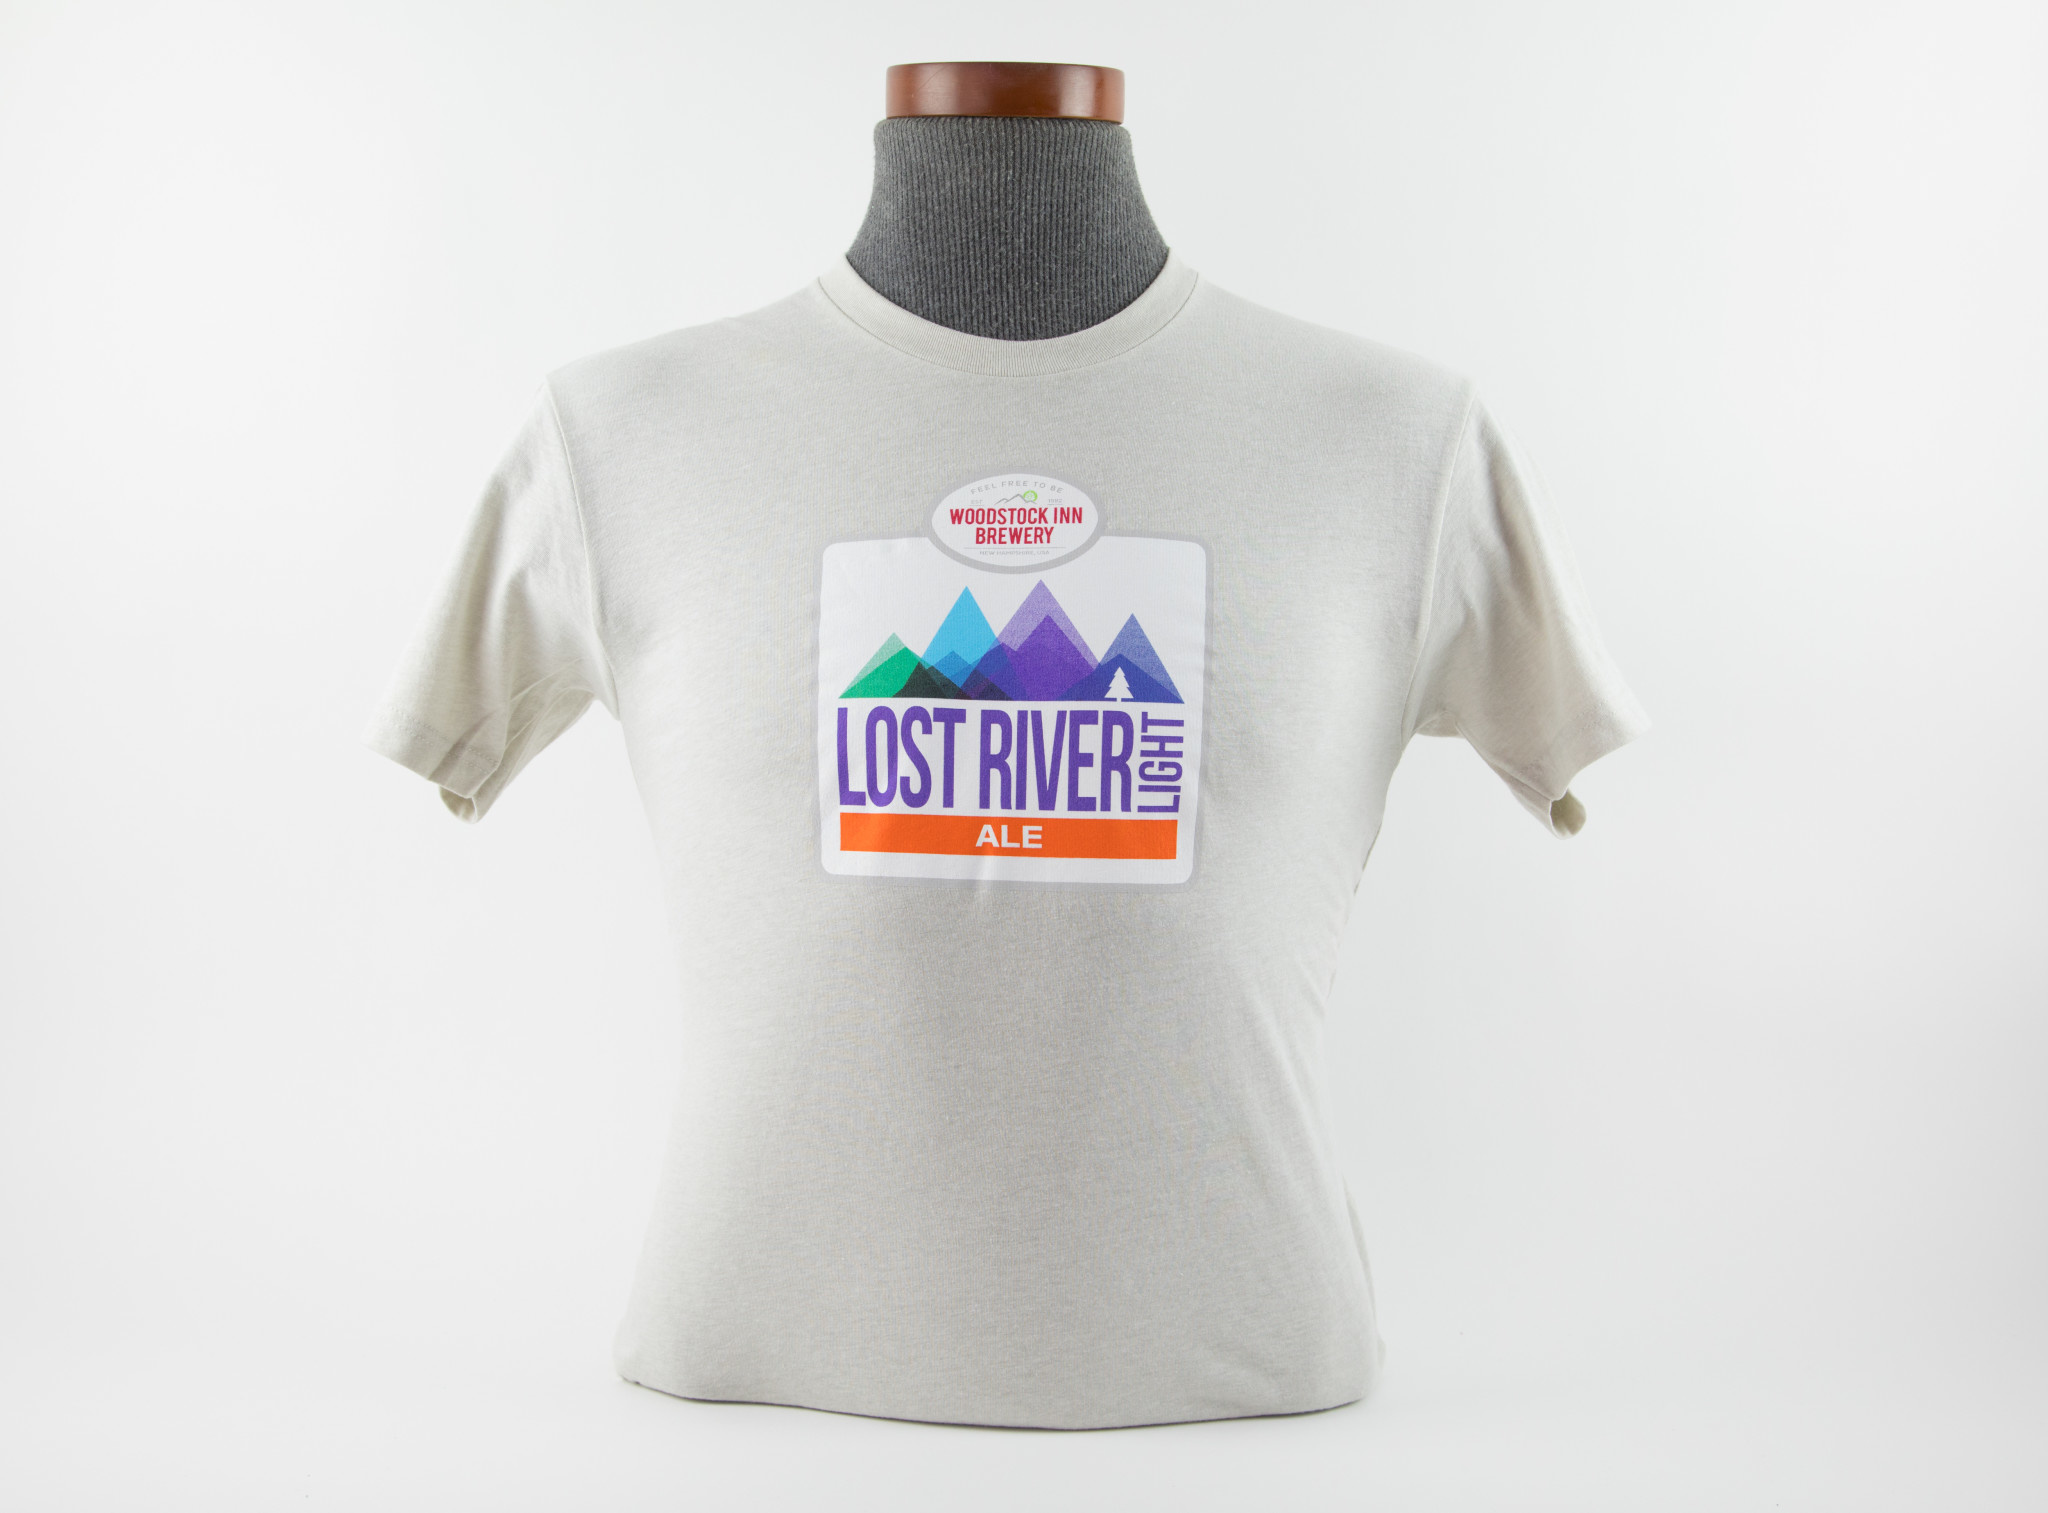 New Lost River T-Shirt